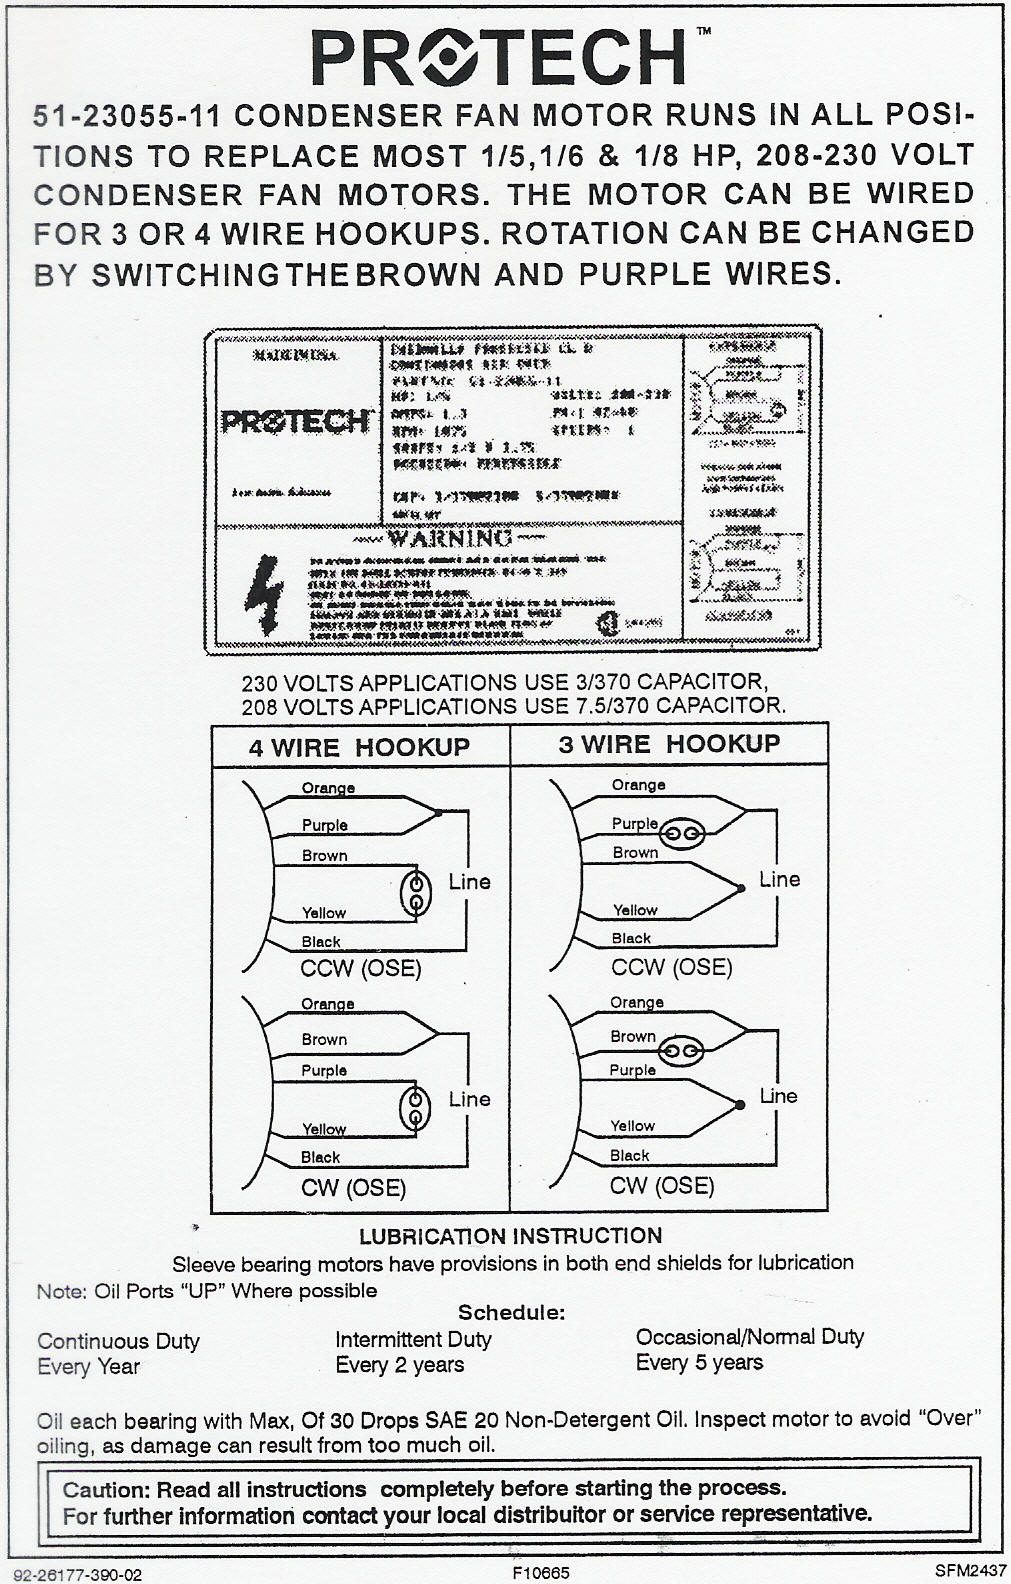 51 23055 11 wiring diagram rheem ruud condenser fan motor 51 23055 11 wiring diagram trane air handler wiring diagrams at bayanpartner.co